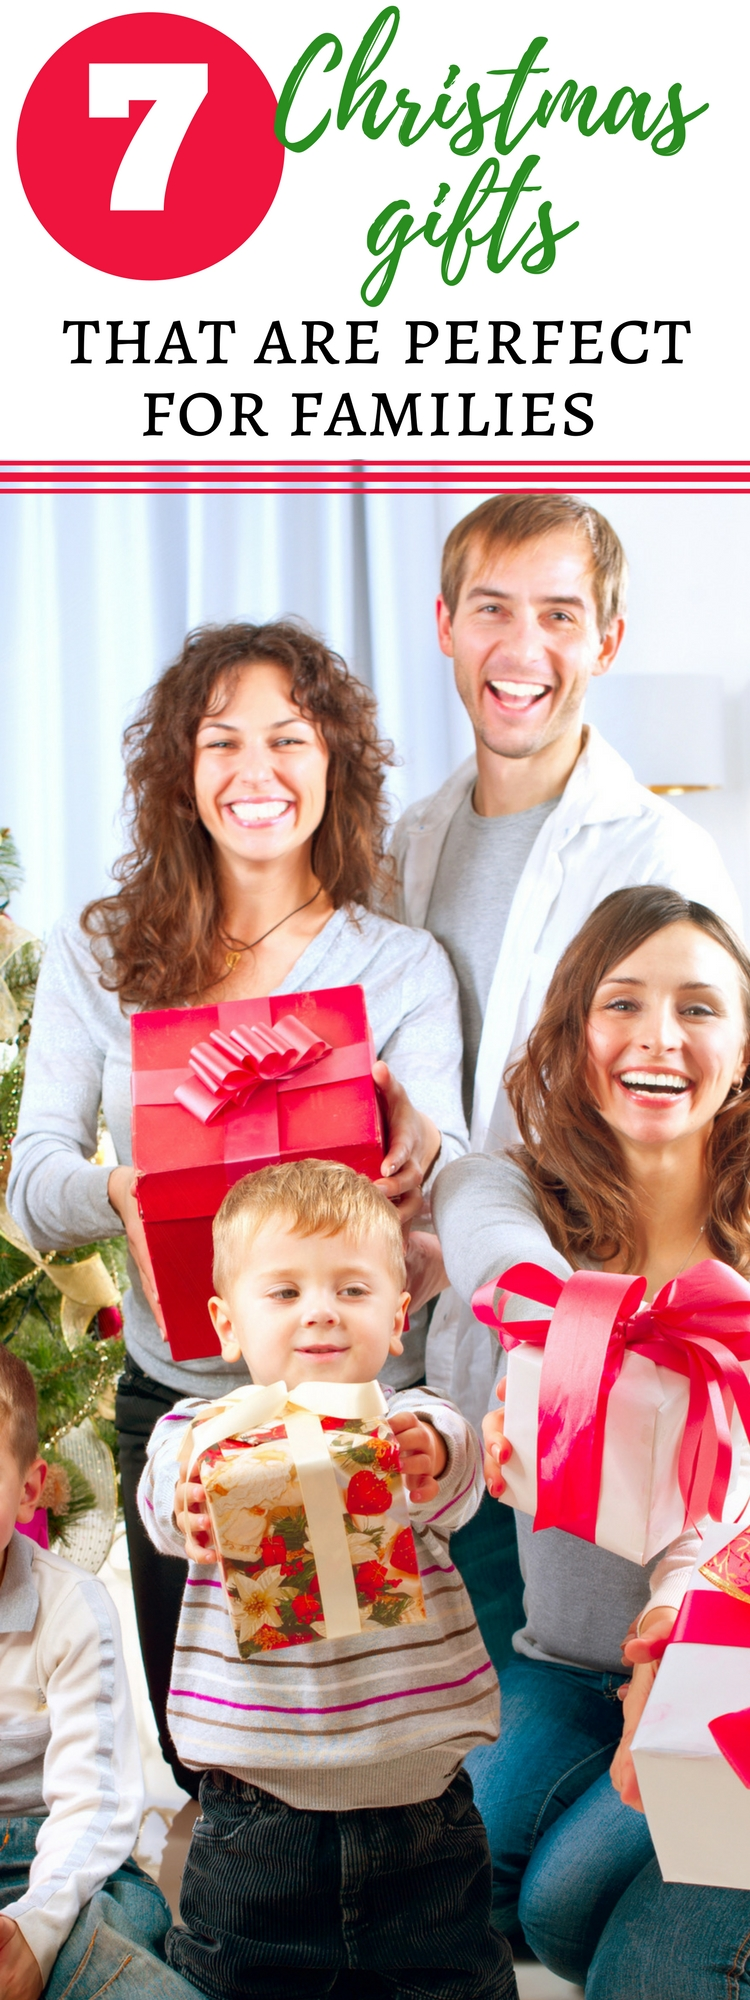 Need a family Christmas present? Check out these suggestions! 7 Christmas gifts that are perfect for families. Check out these good ideas to give as Christmas gifts.